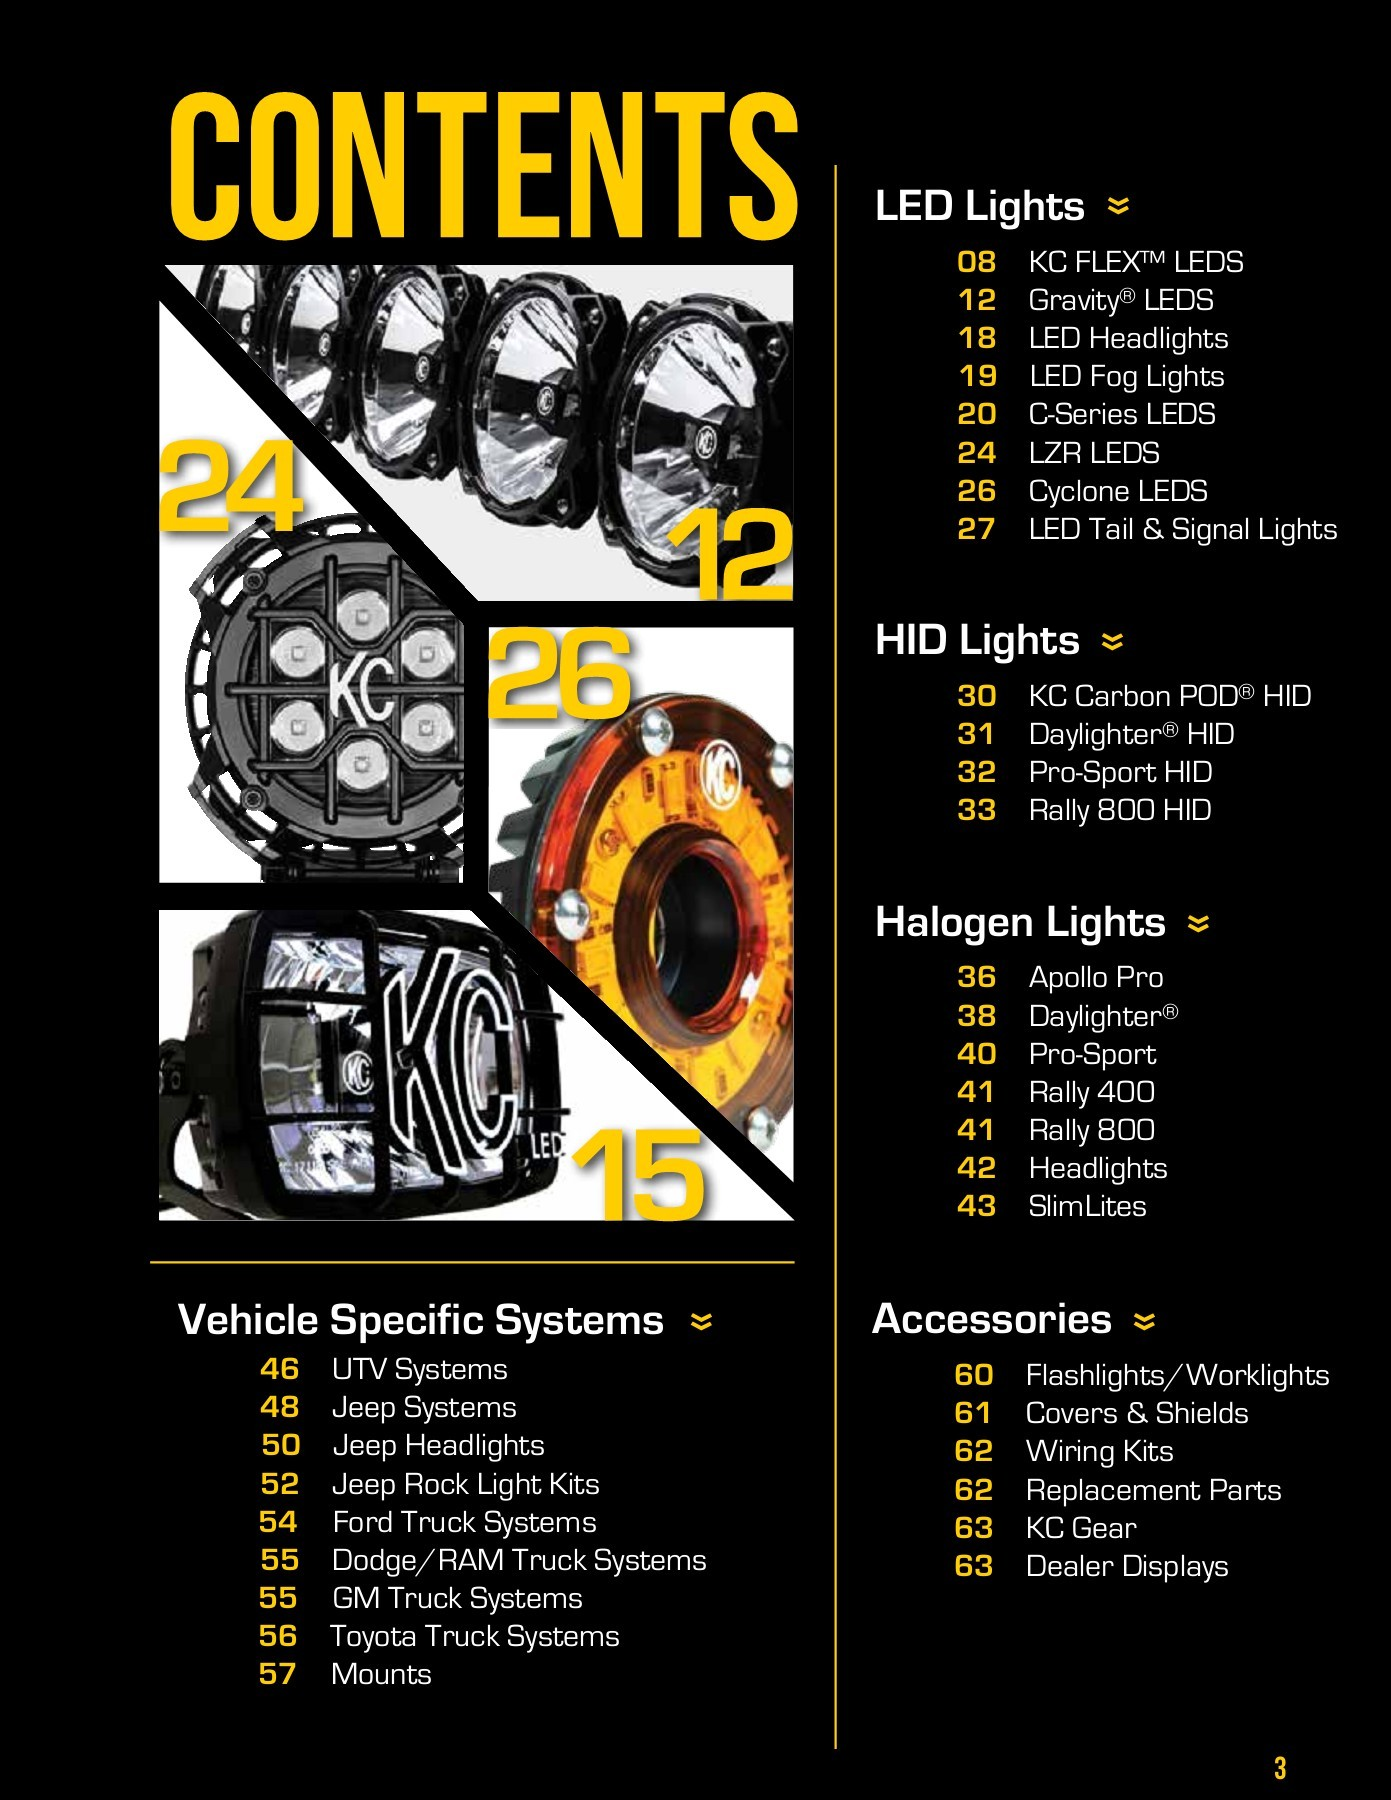 Jeep Kc Lights Wiring 6310 - Wiring Diagram Img Kc Hilites Wire Diagram on